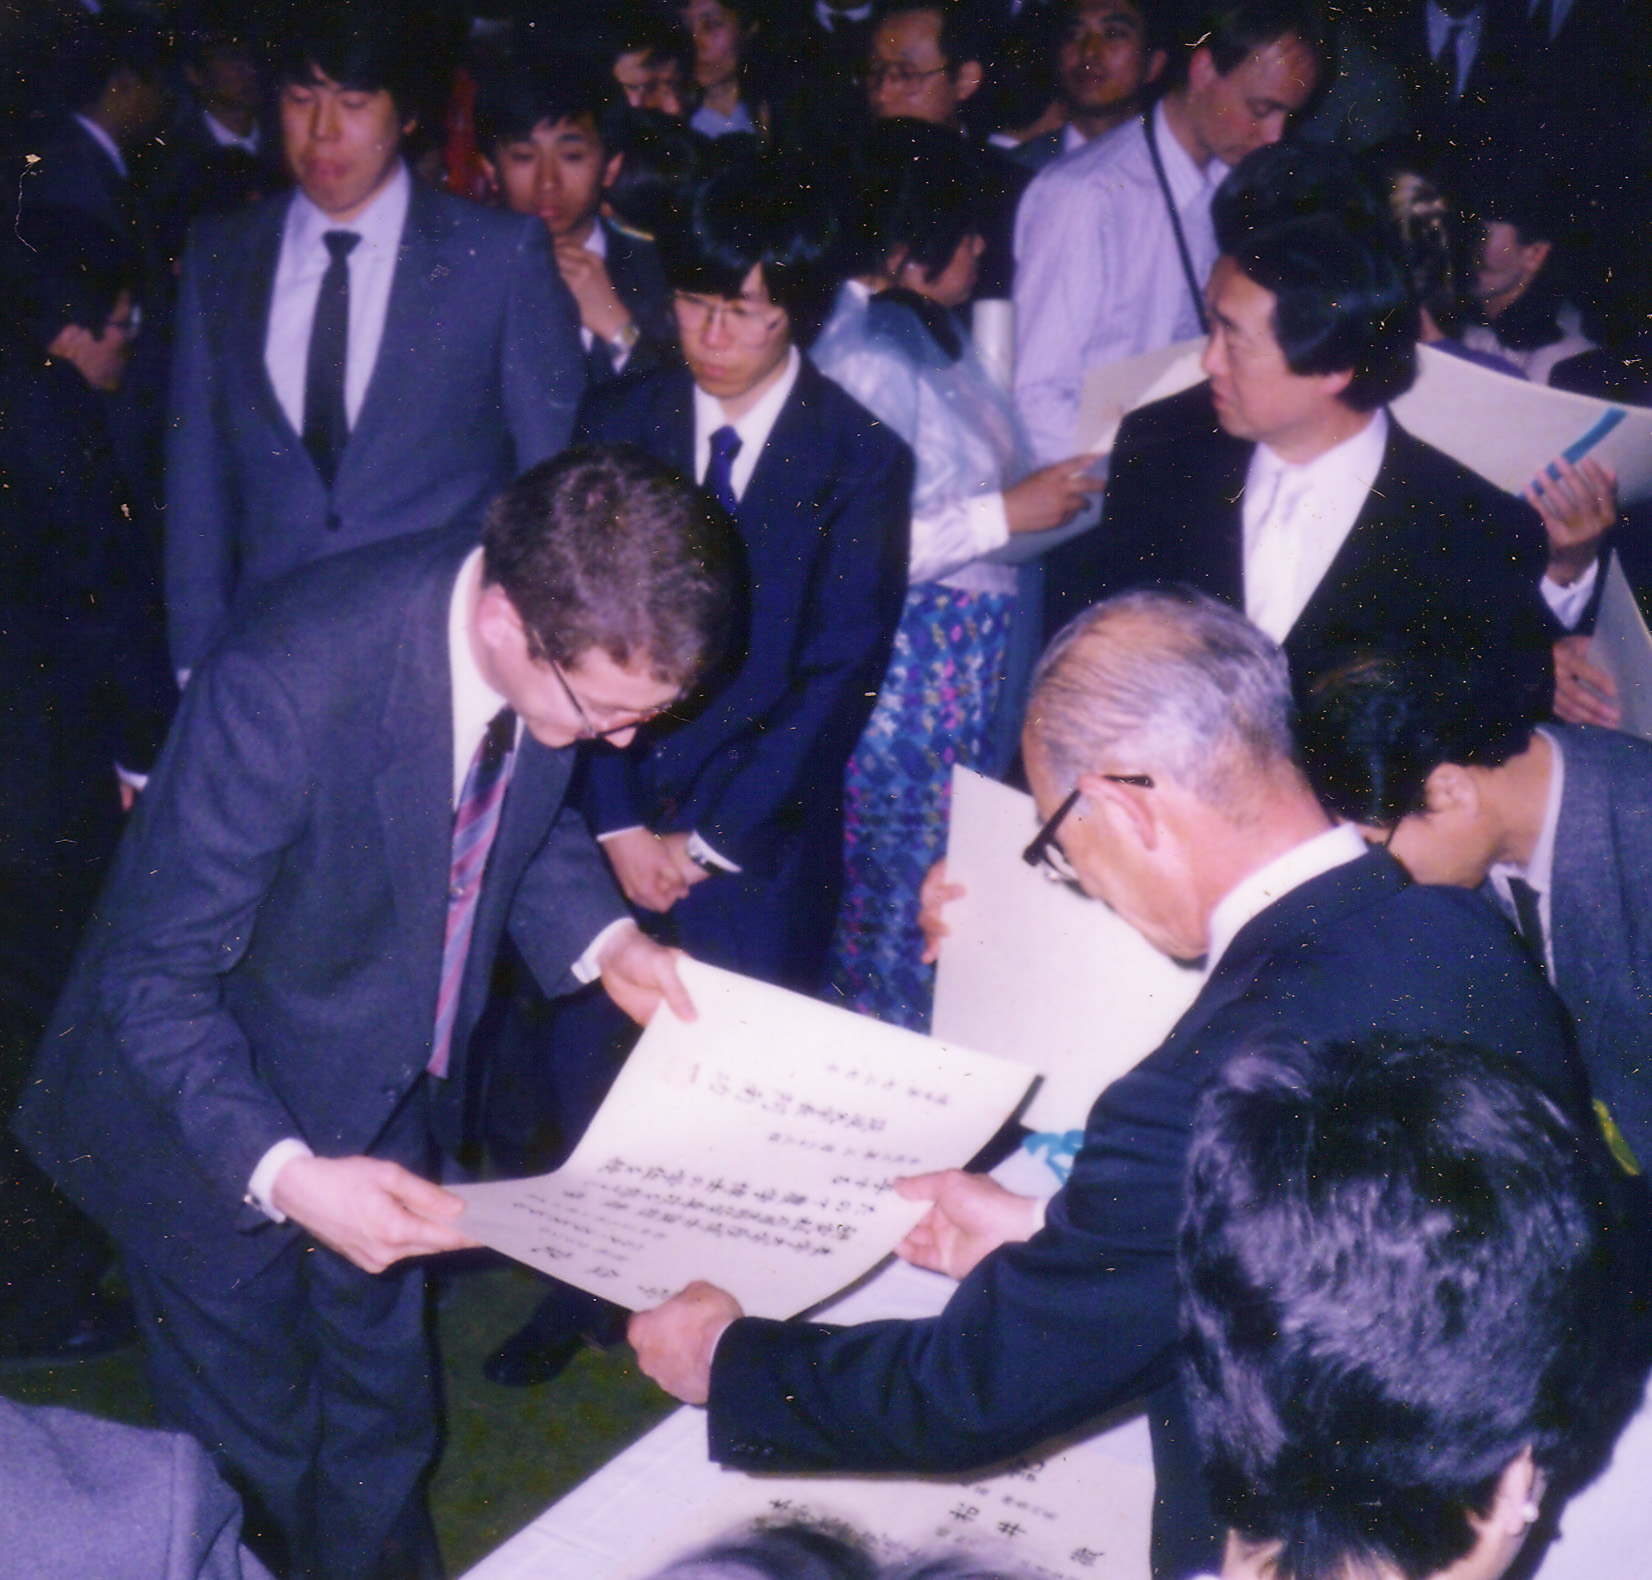 Leal receives his diploma in Japan